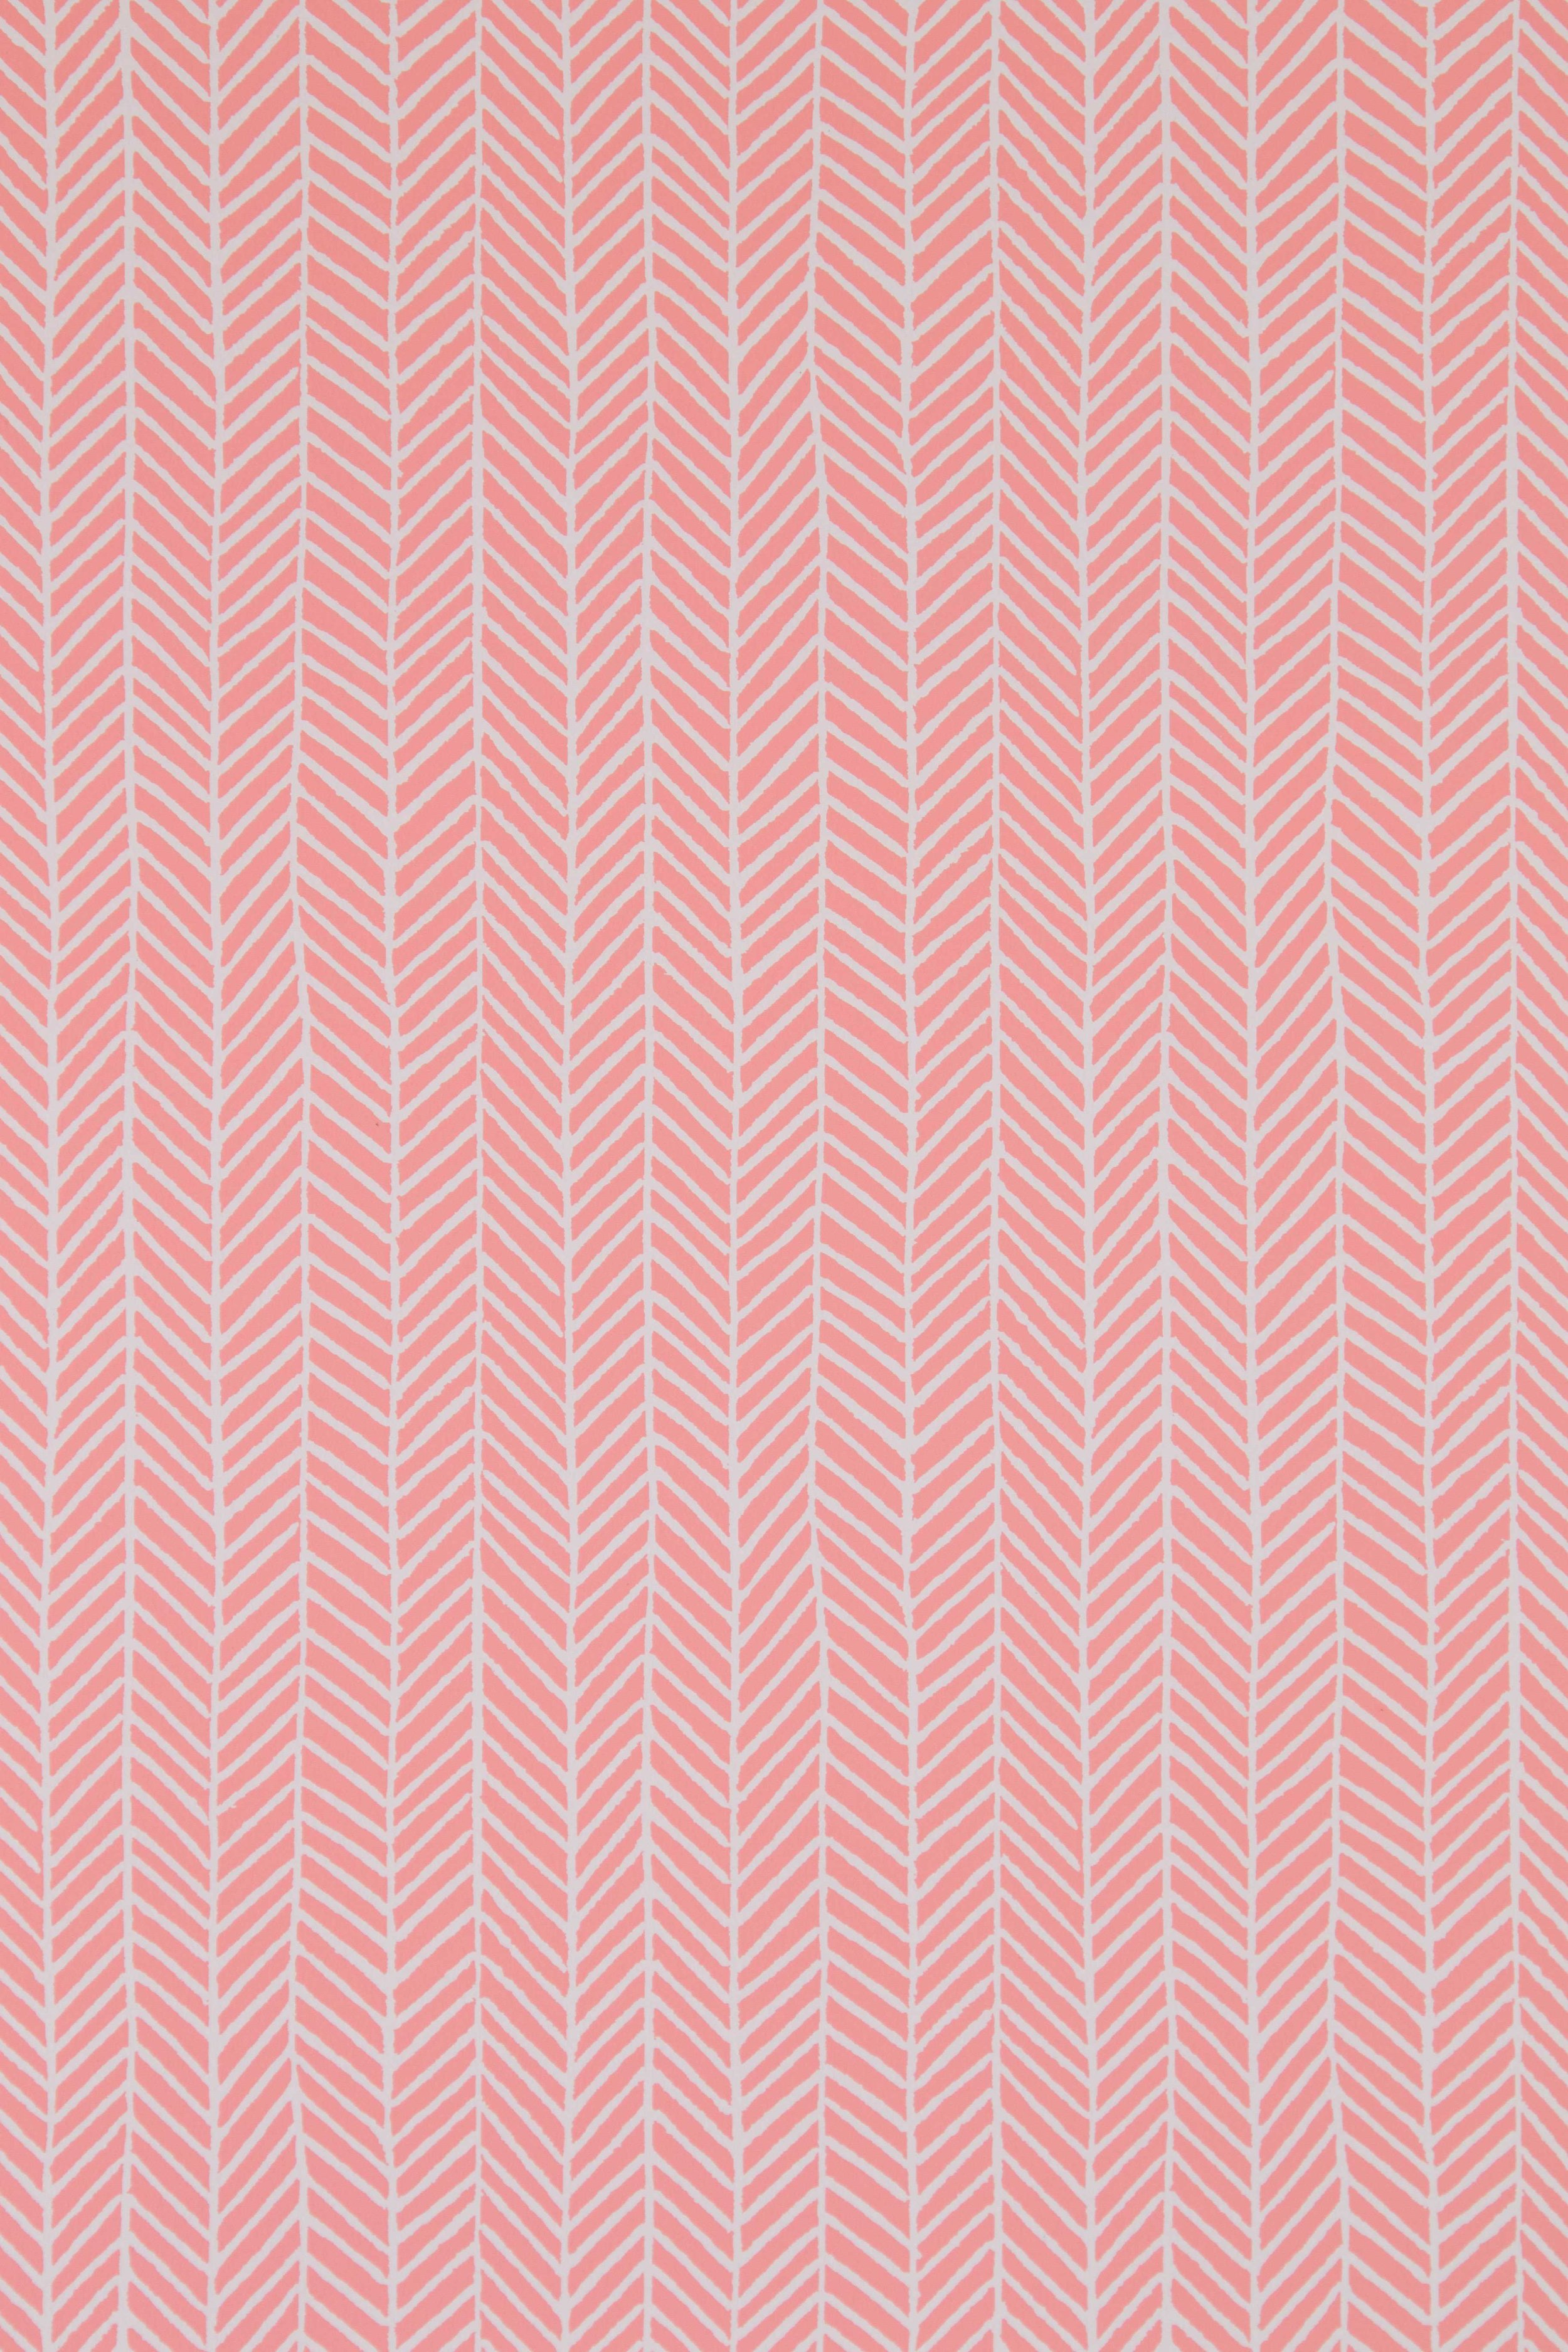 Coral Pink 08